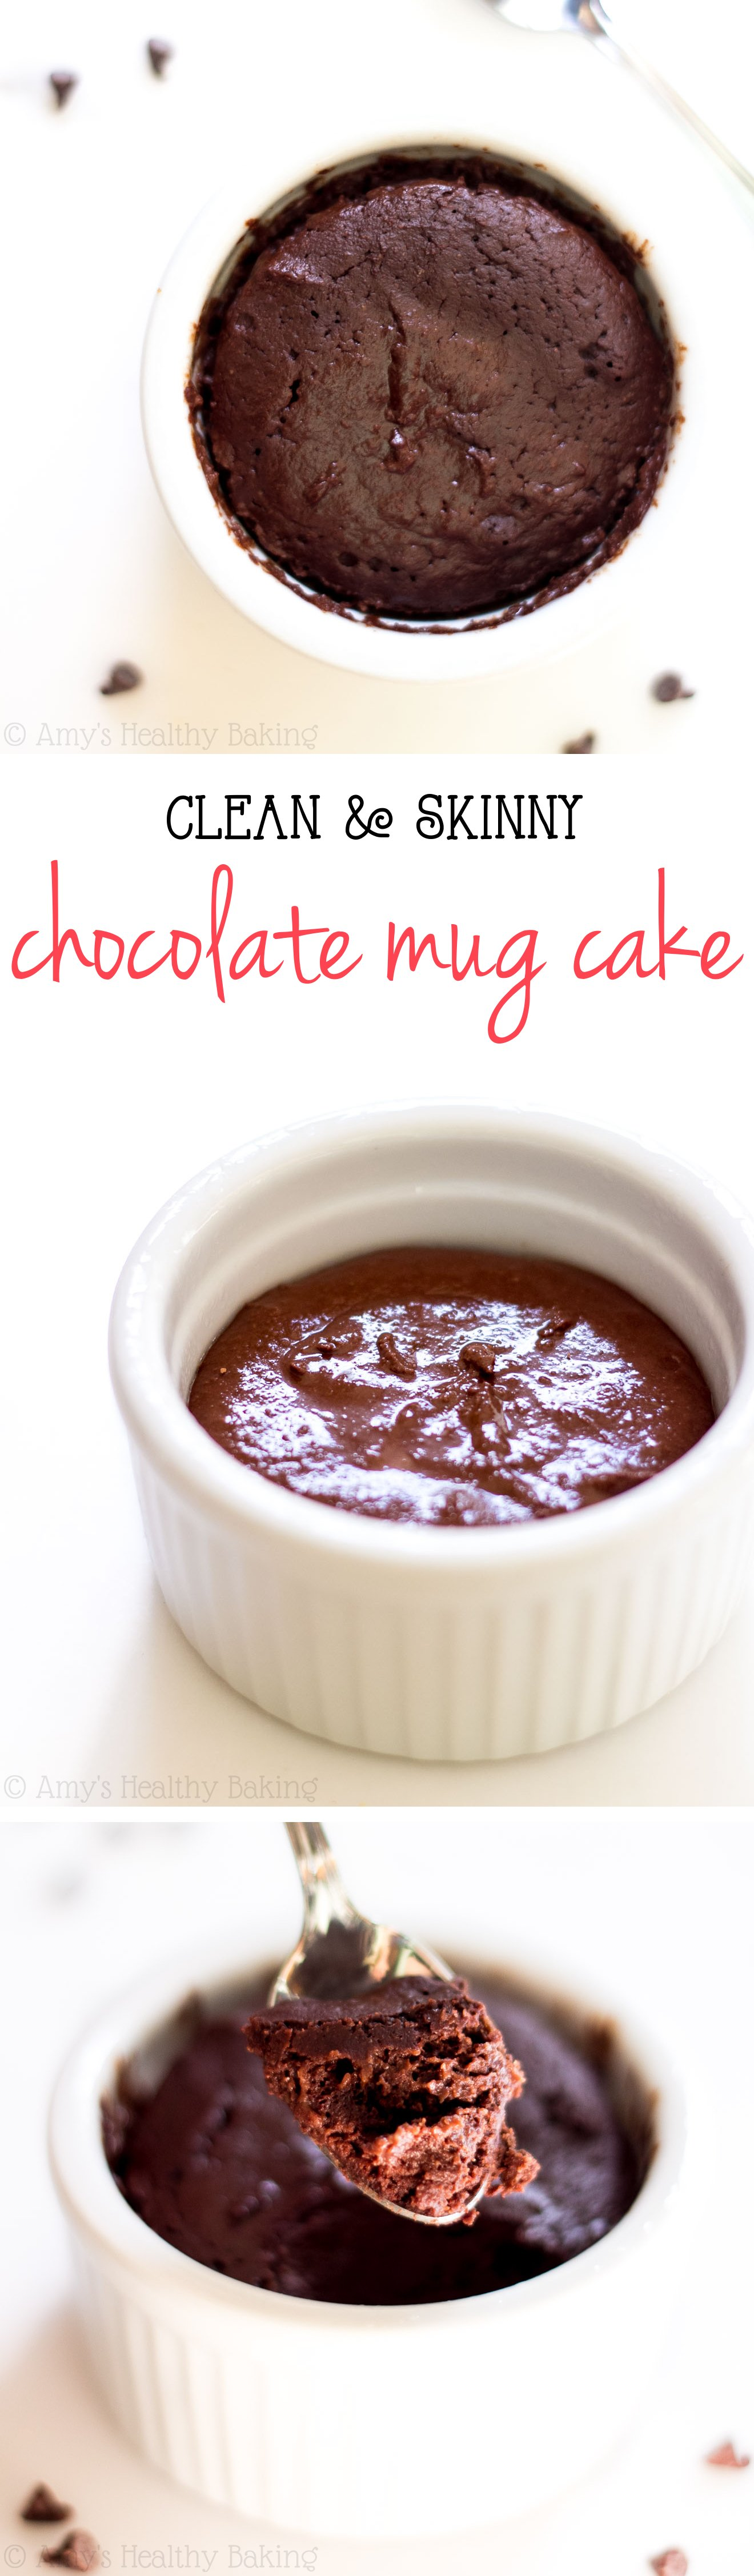 Healthy Chocolate Cake In The Microwave